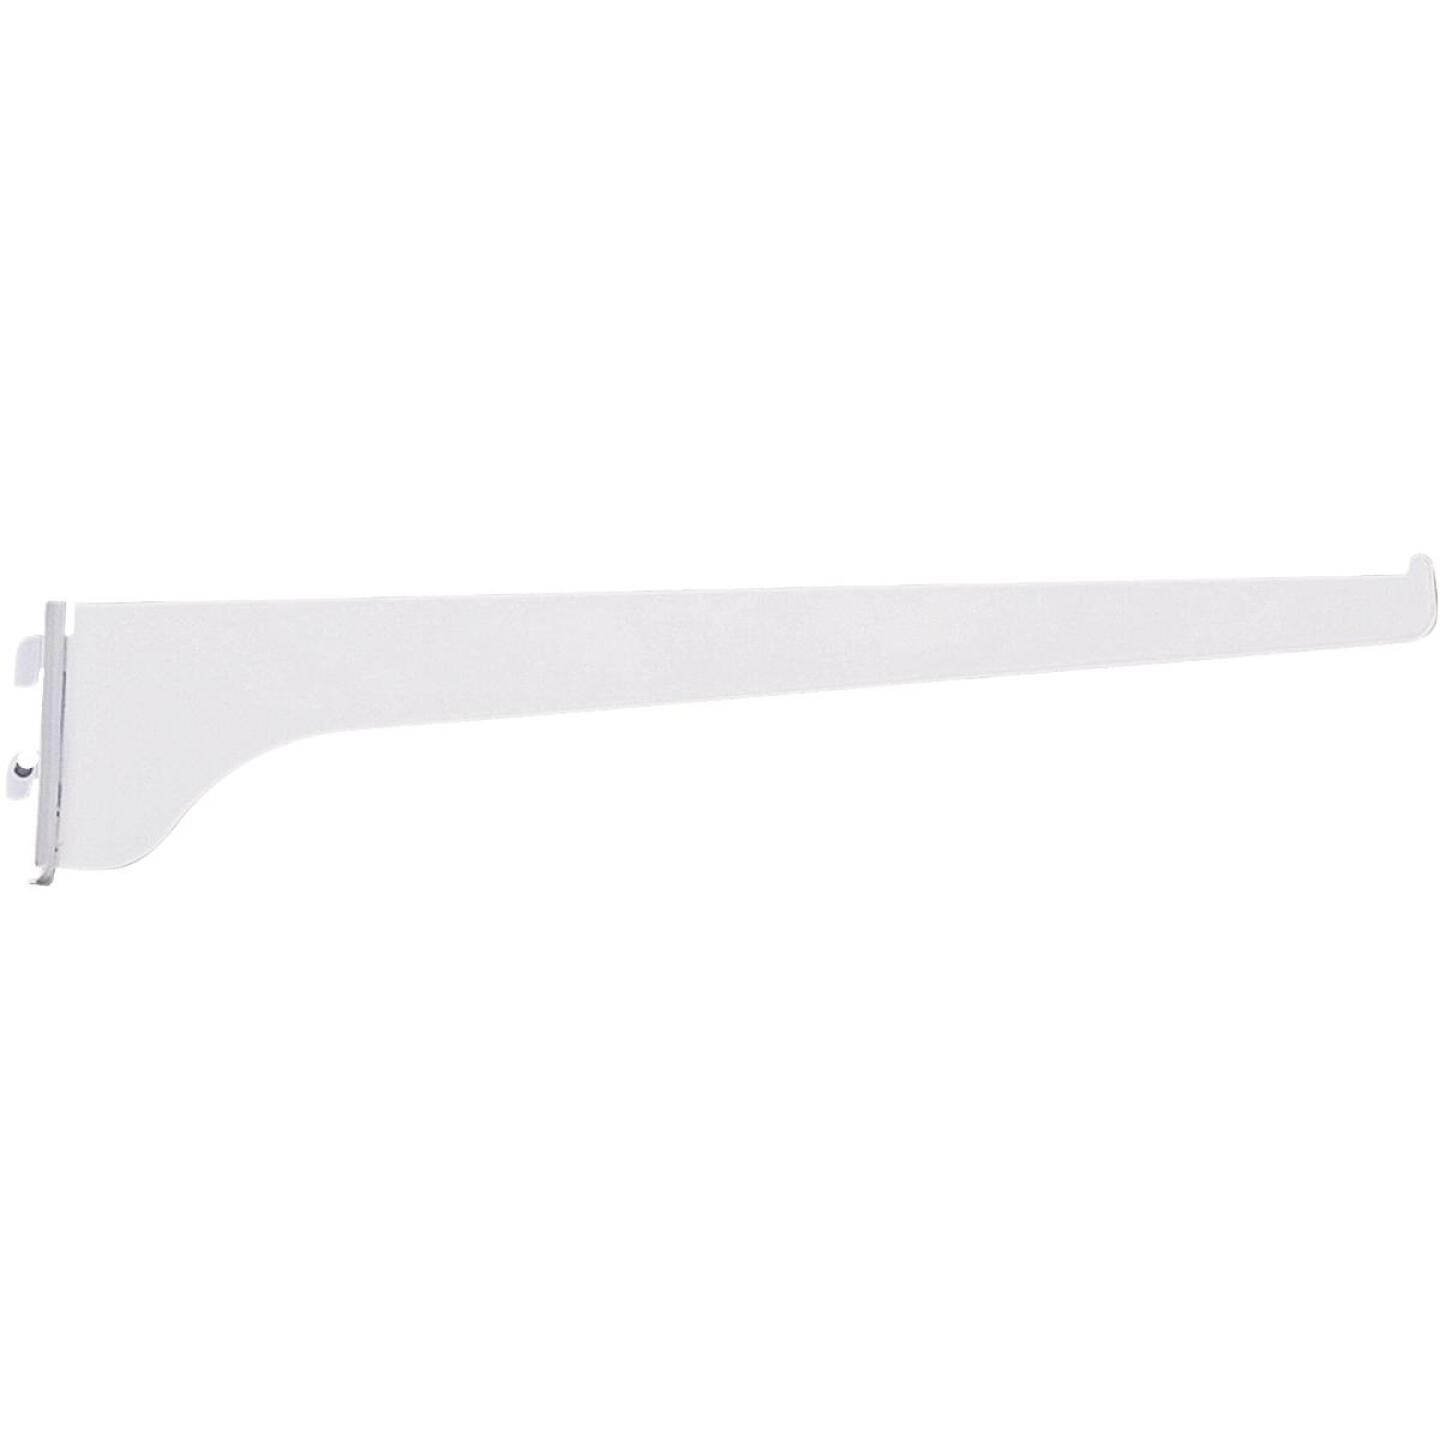 Knape & Vogt 180 Series 10 In. Titanium Steel Regular-Duty Single-Slot Shelf Bracket Image 1